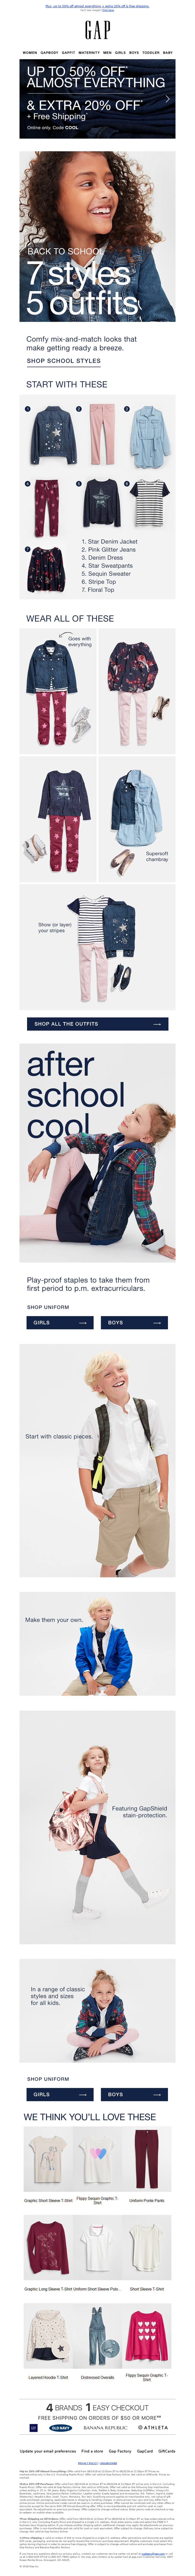 back to school email example for clothing brands